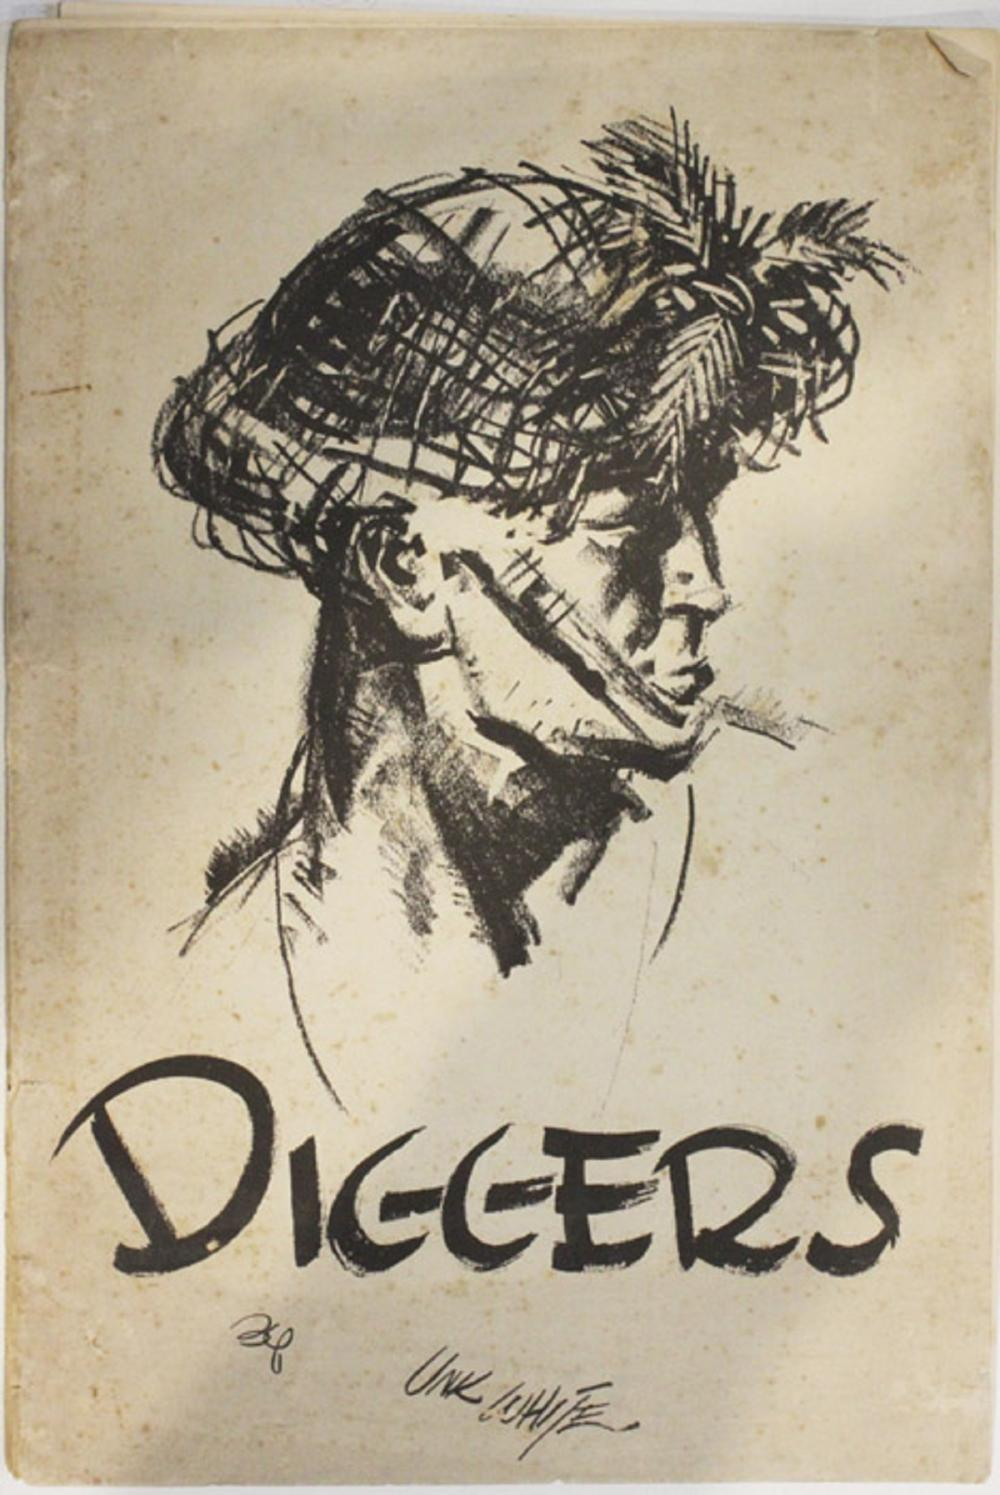 """WWII Australia. Publication """"Diggers"""" by Unk White"""